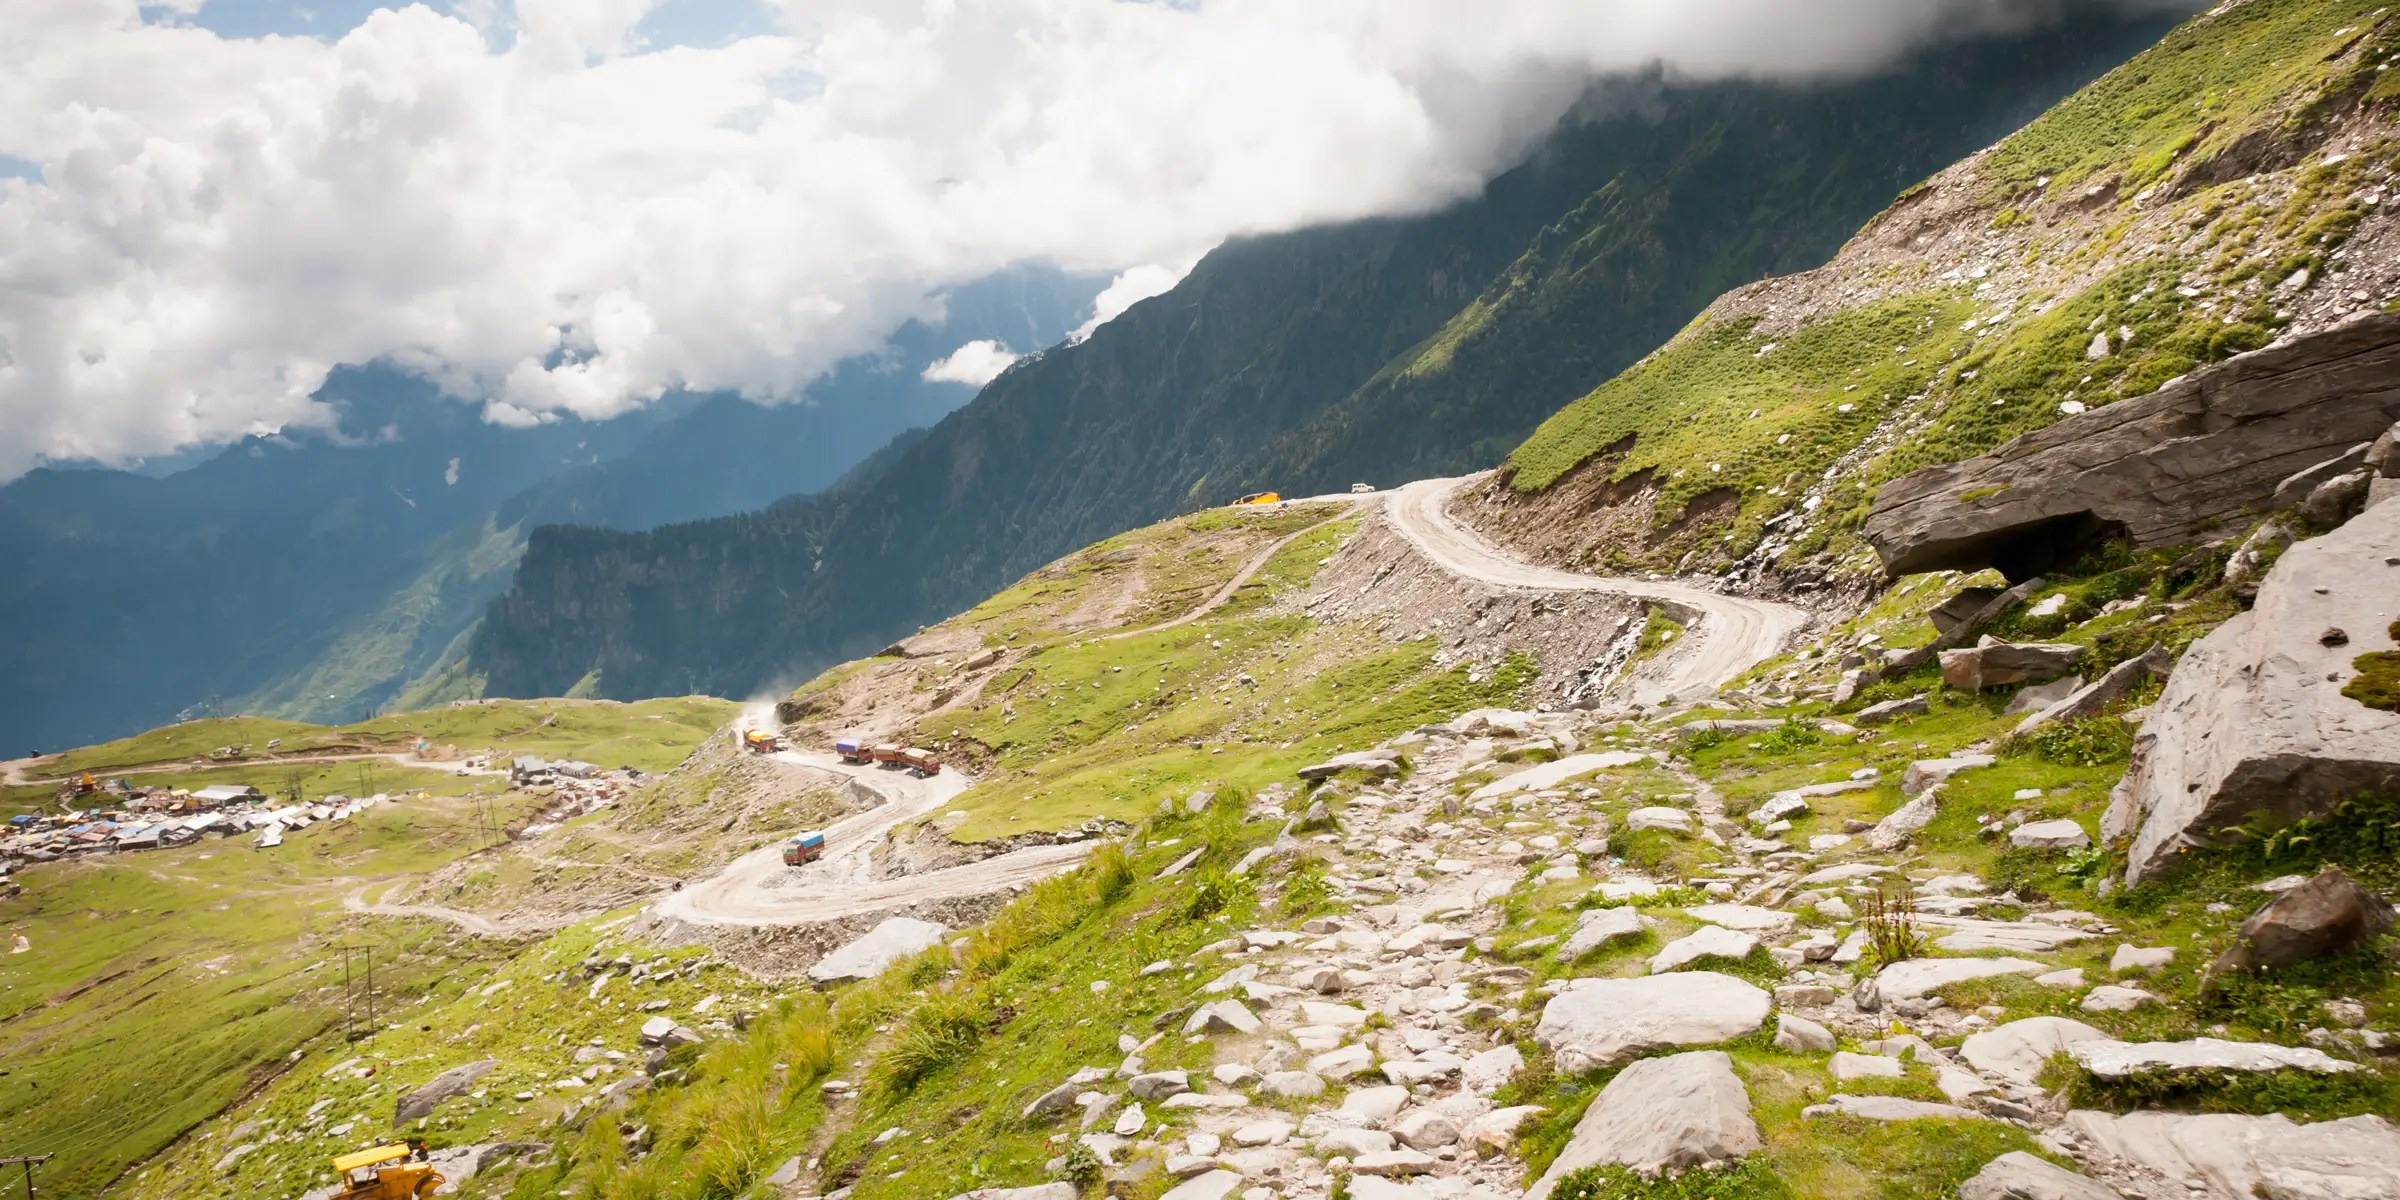 India's Rohtang Pass offers a spectacular view of glaciers, peaks and rivers.  Be warned — it's also known for its massive landslides.